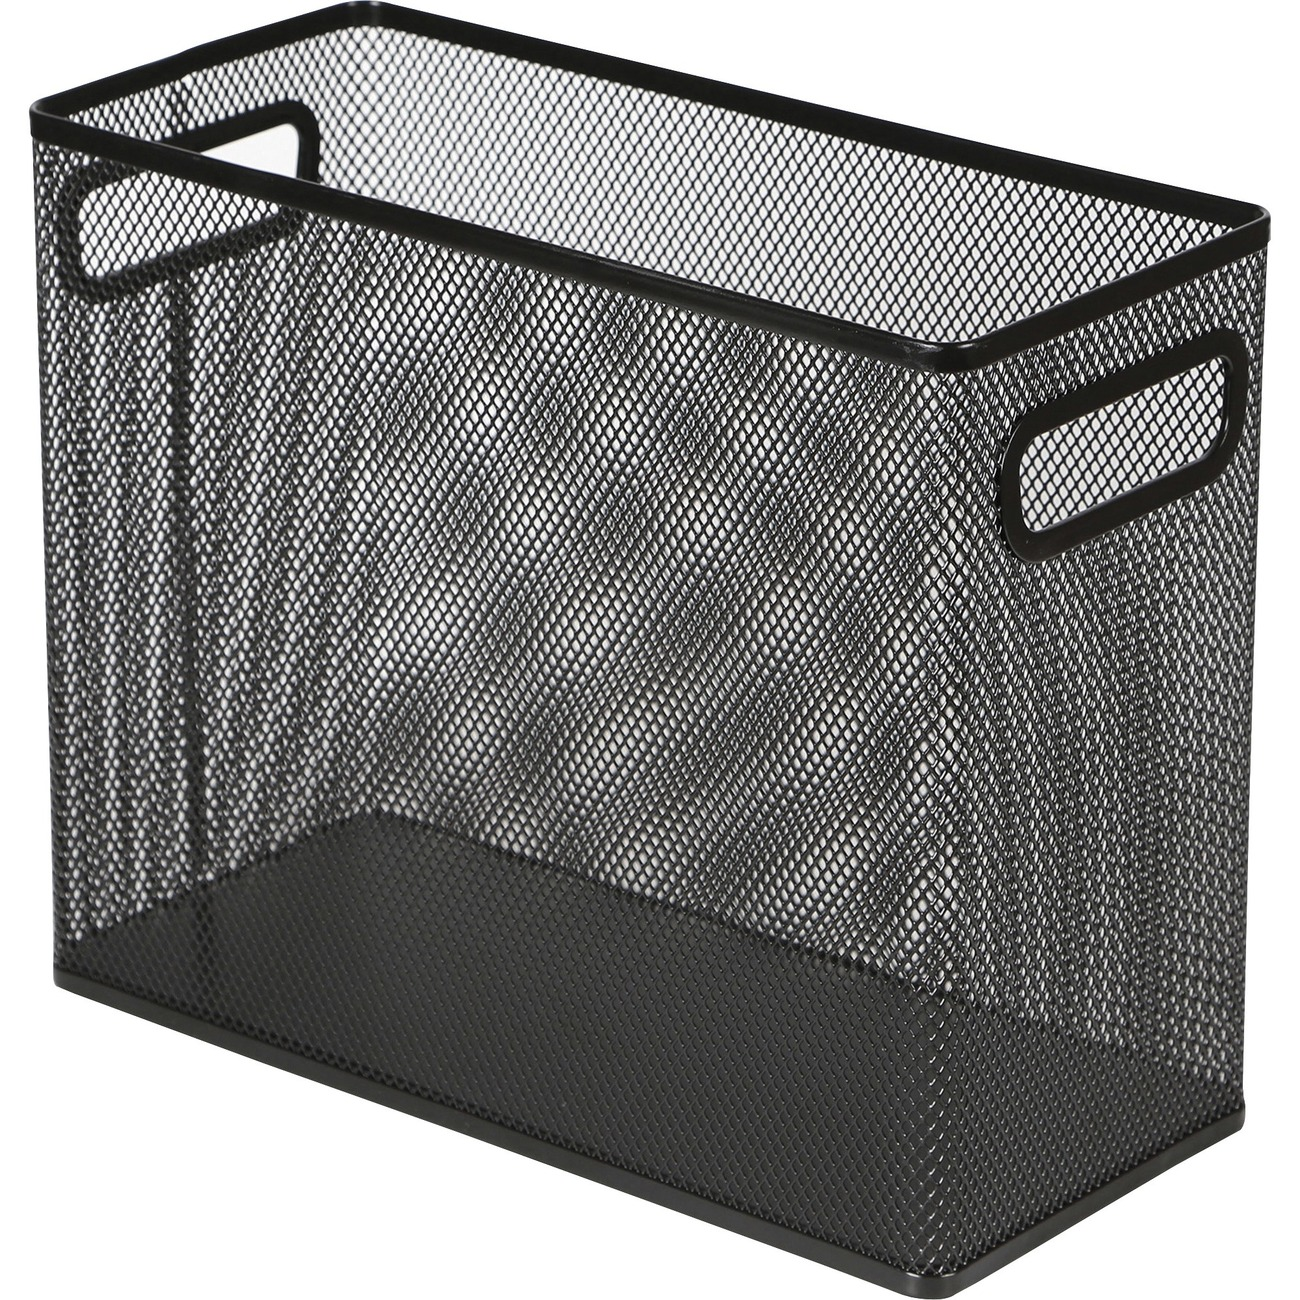 Steel Tabletop File For Hanging Folders Keeps Your Letter Size Files Standing On Desktop And Ready Frequent Use Mesh Exterior Easily Lets You